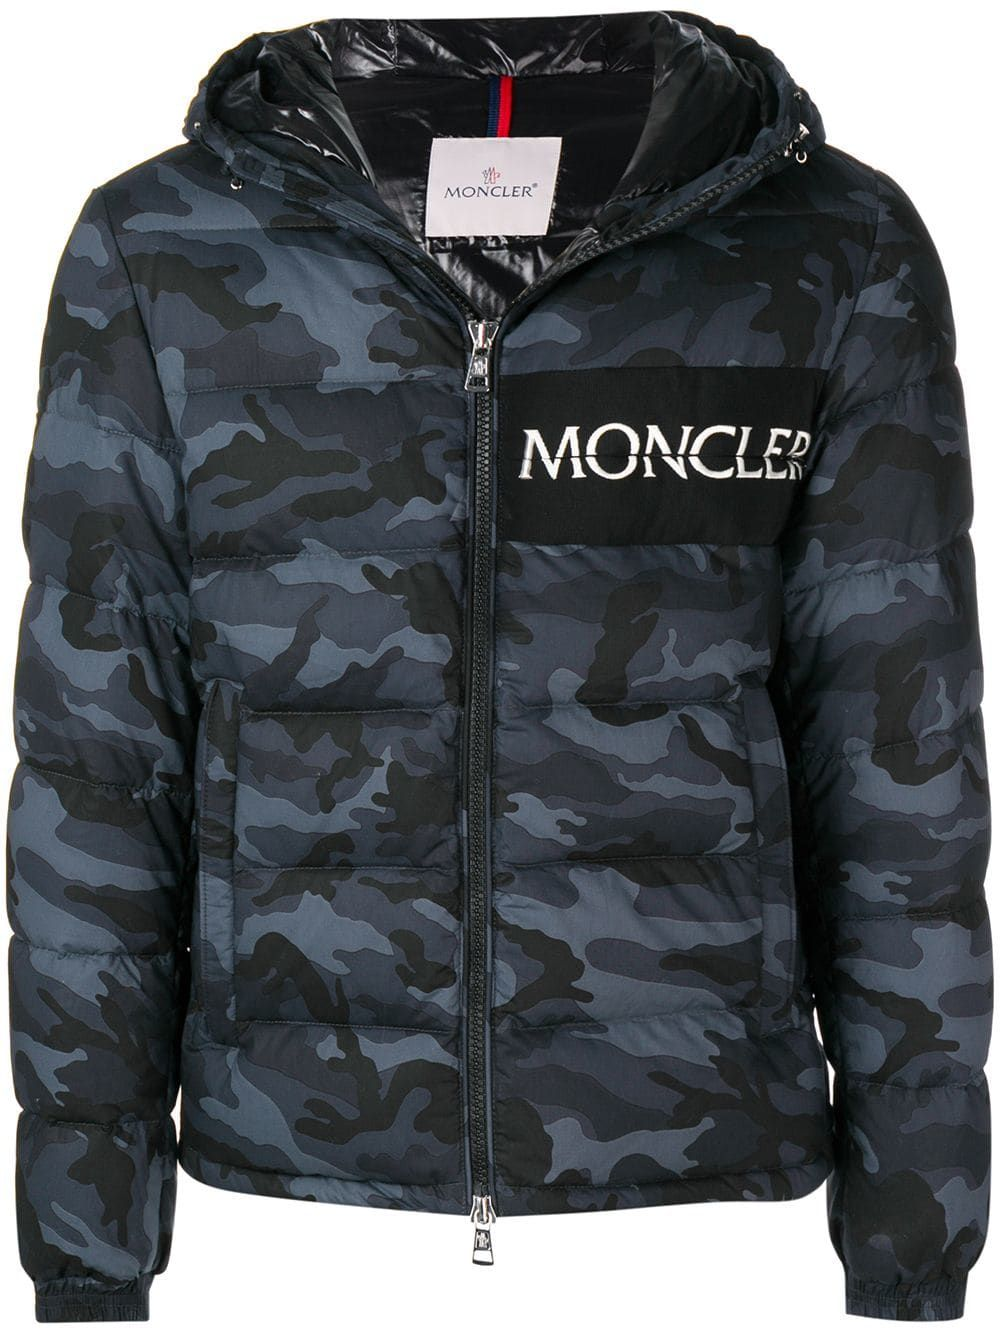 8e8c51377cfee MONCLER MONCLER CAMOUFLAGE PRINT PUFFER JACKET - BLUE. #moncler #cloth